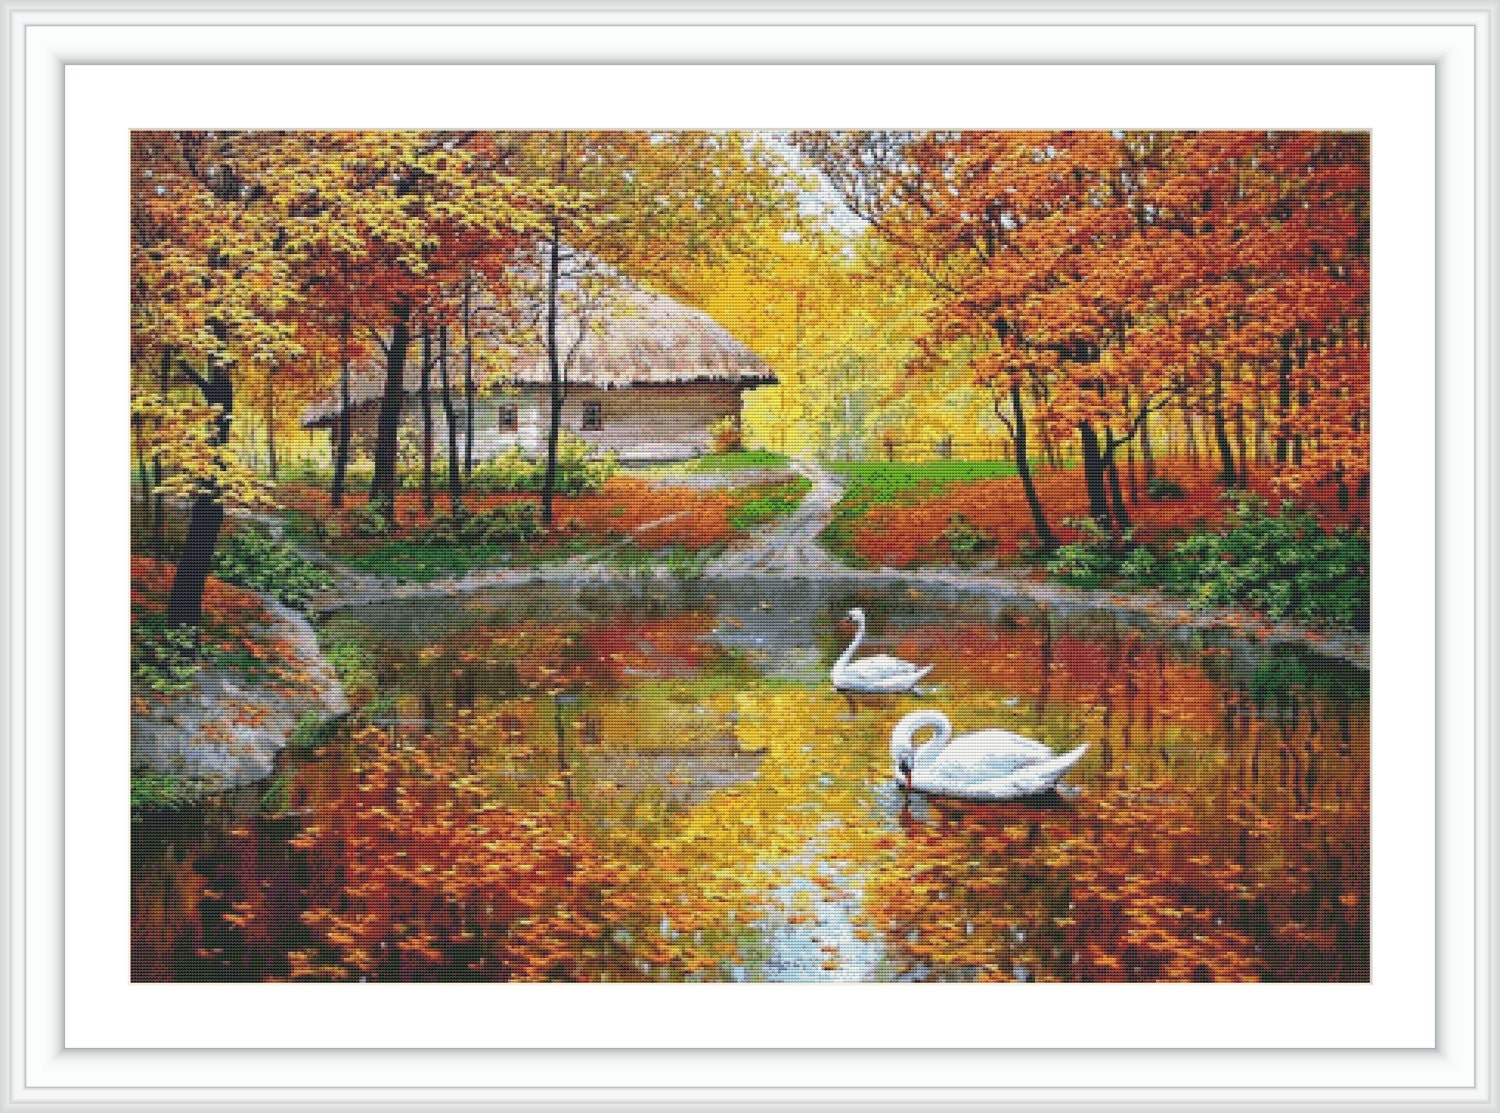 Autumn Counted Cross Stitch Pattern